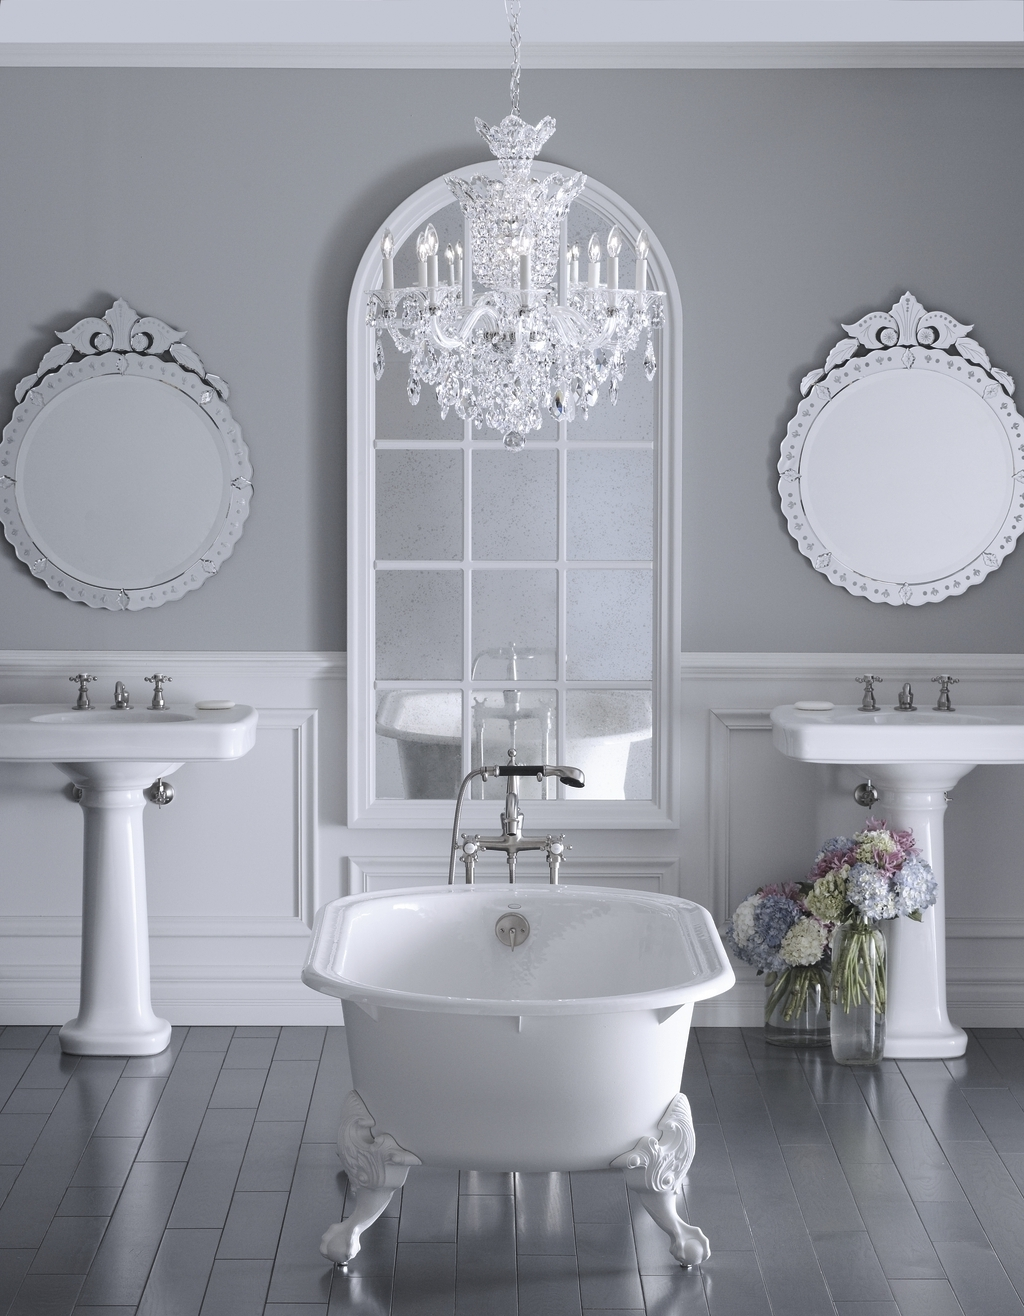 Widely Used Bathroom Chandeliers In Bathroom: Bathroom Chandeliers For Beautiful And Elegant Bathroom (View 17 of 20)